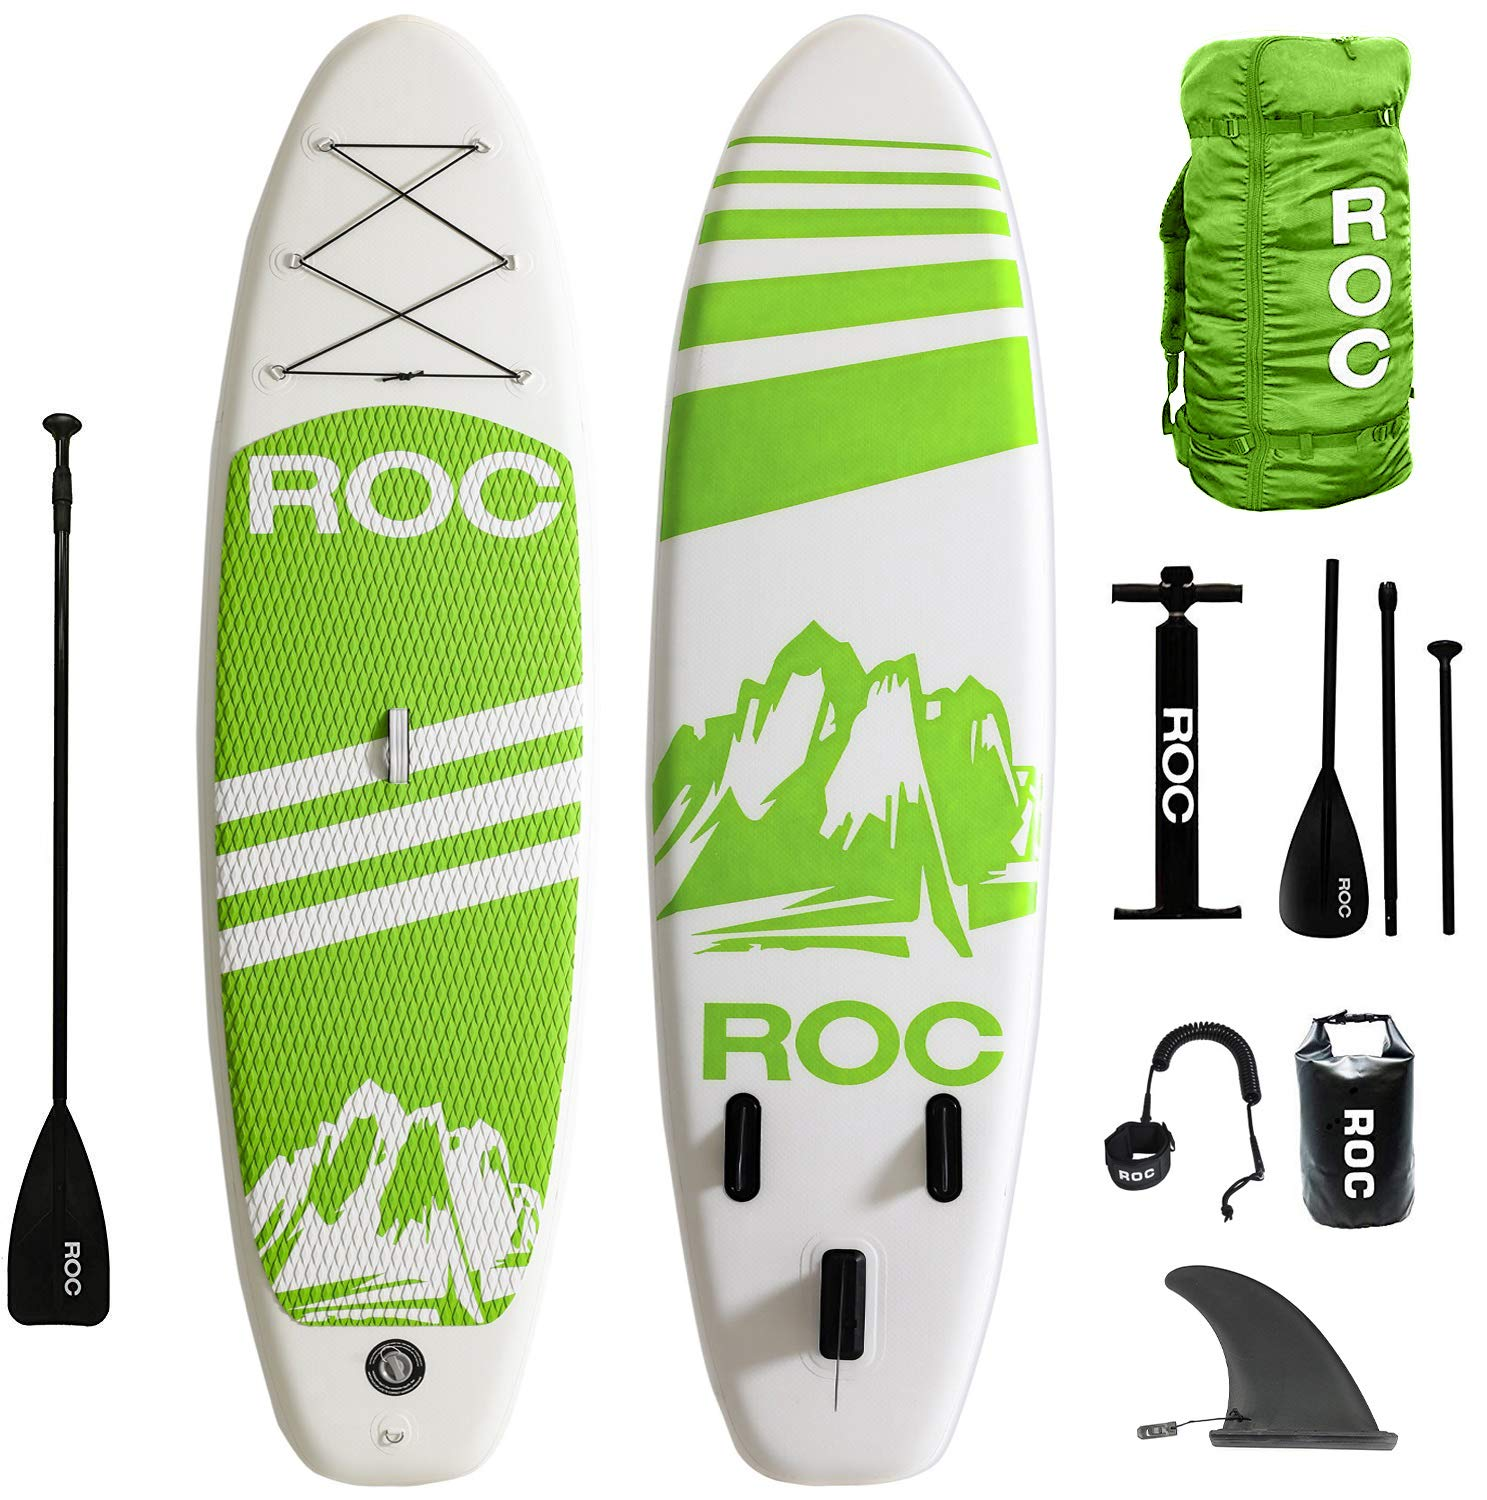 Roc Inflatable Stand Up Paddle Boards W Free Premium SUP Accessories & Backpack { Non-Slip Deck } Bonus Waterproof Bag, Leash, Paddle and Hand Pump !!! Youth & Adult (Green) by Roc